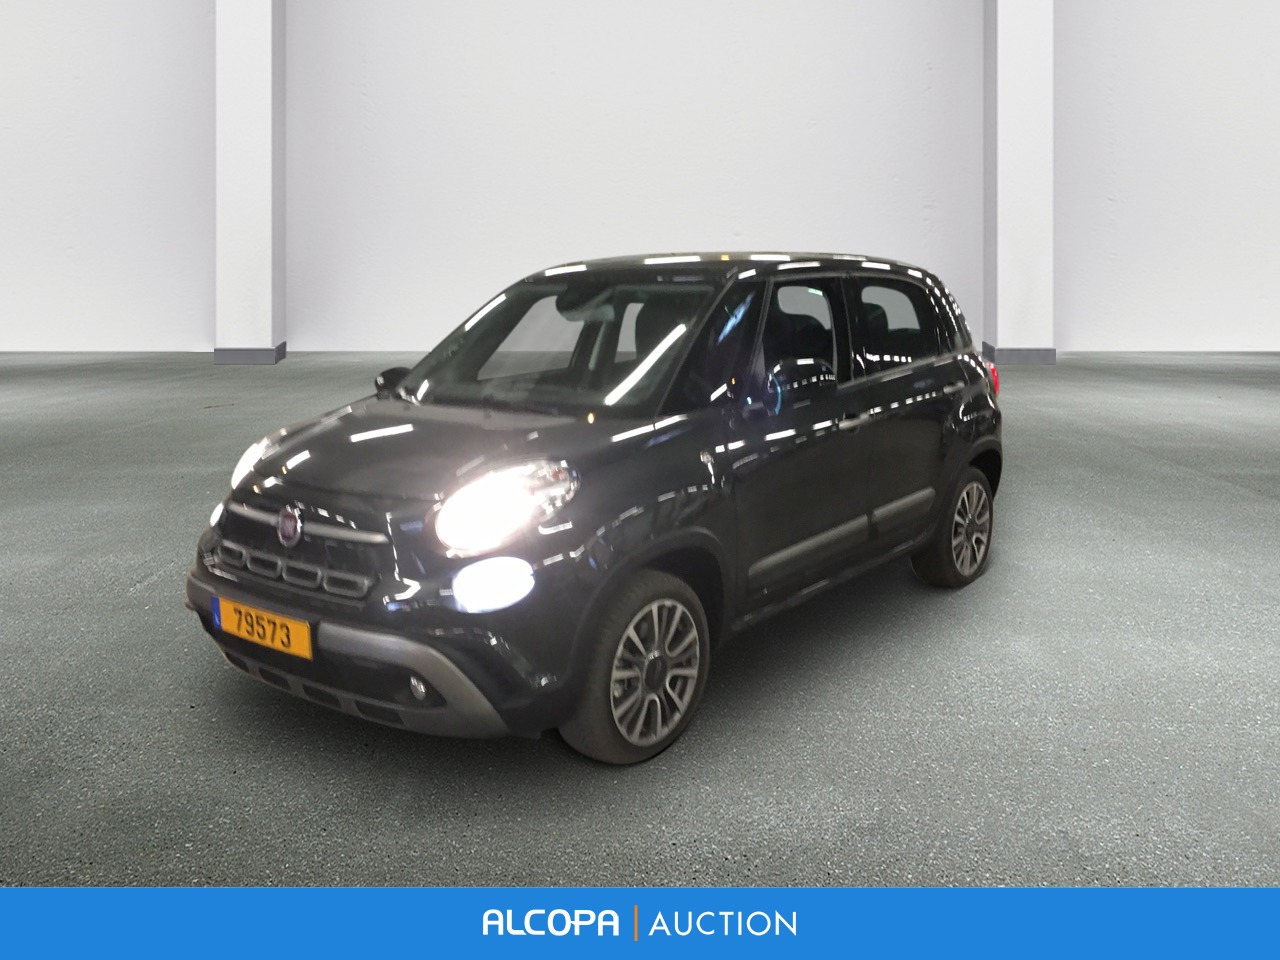 Fiat 500 500l Cross 1 4 Tjet 120ch Alcopa Auction